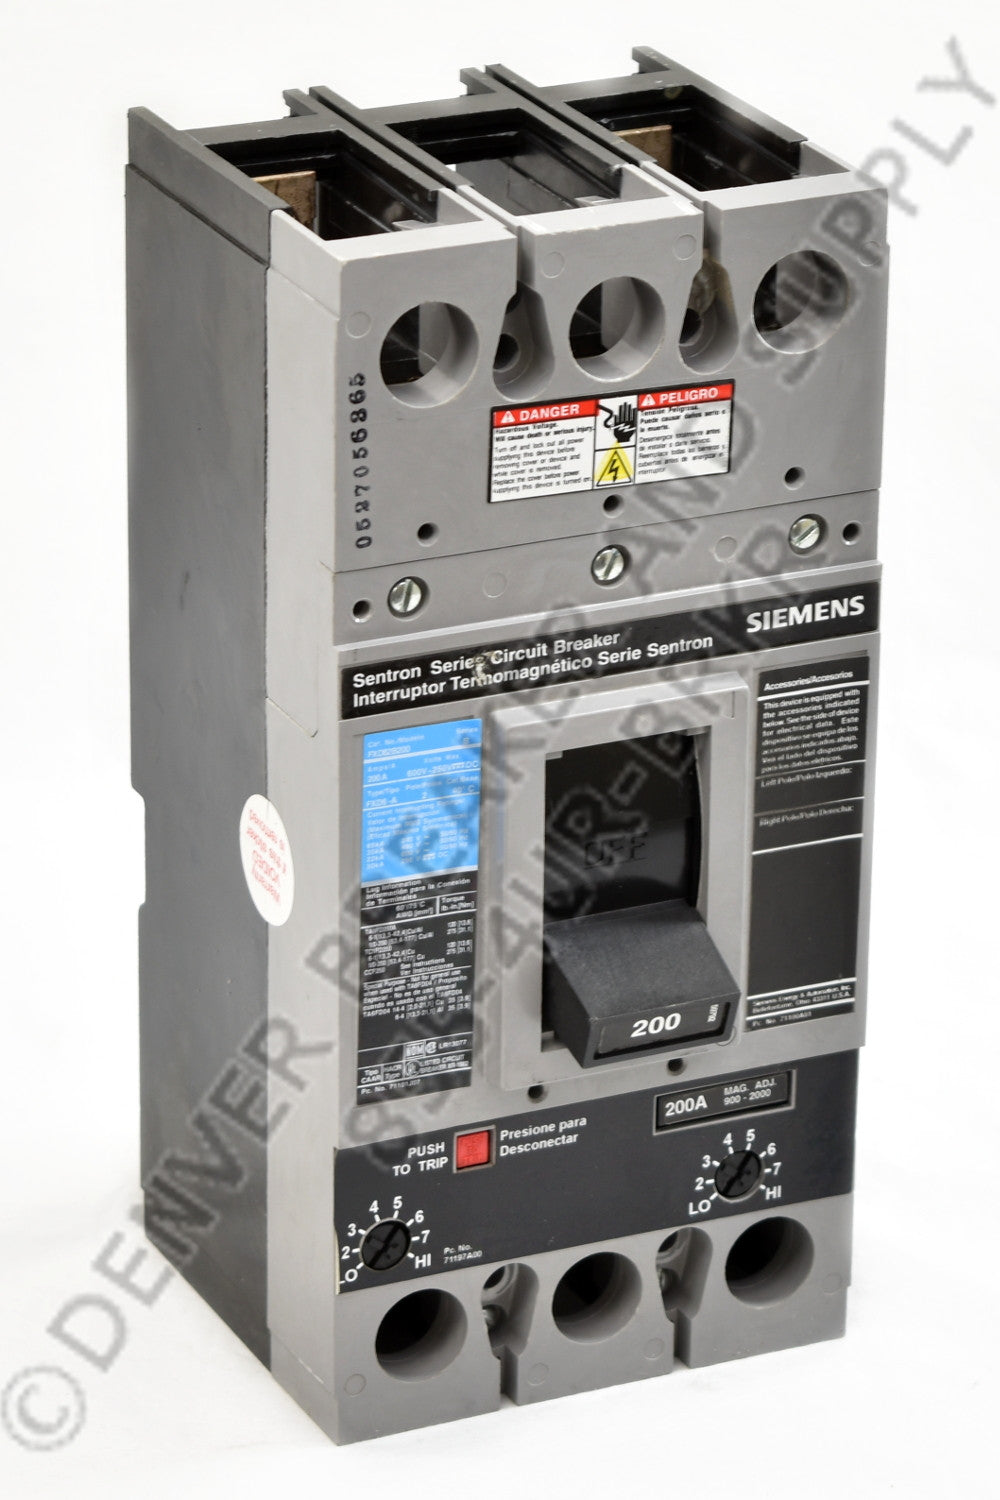 Siemens FD63B250 Circuit Breakers